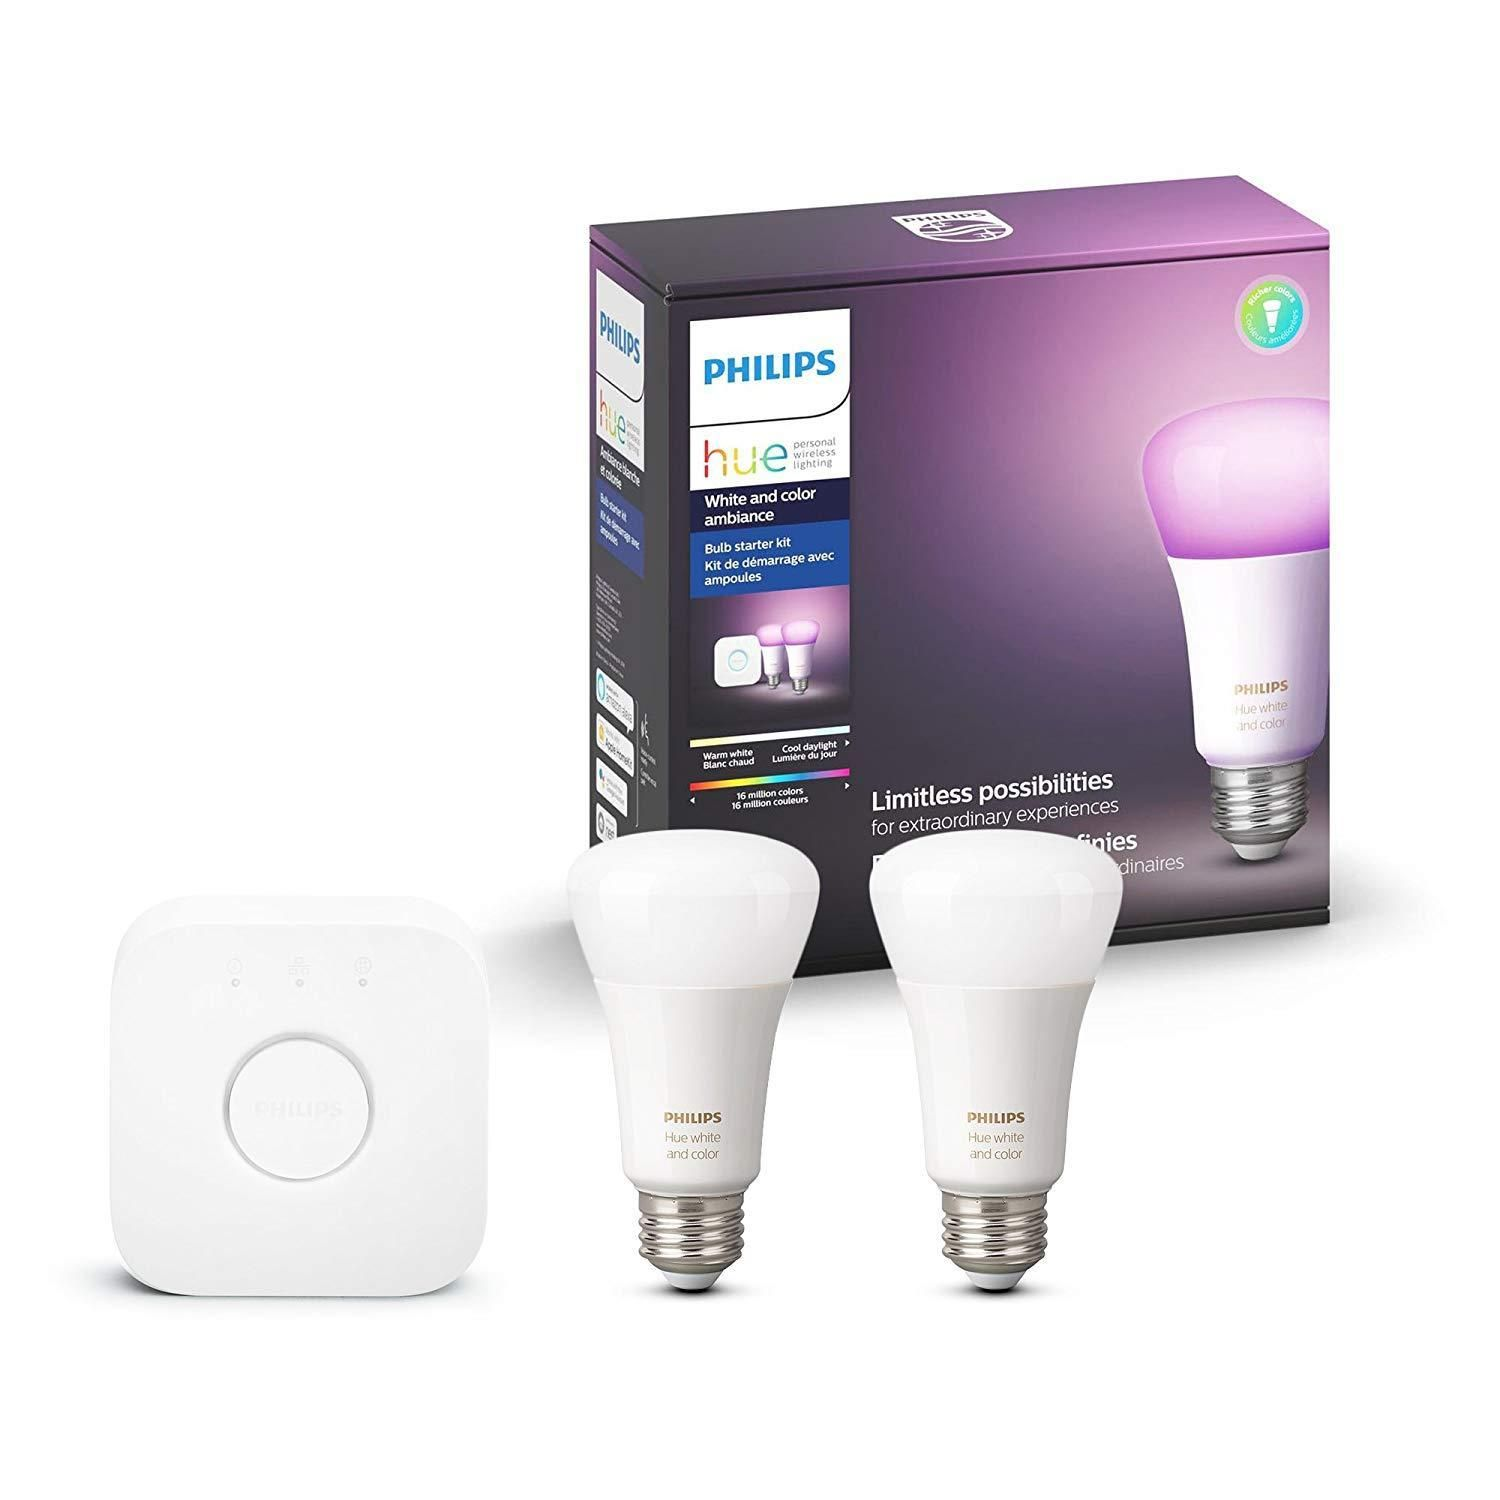 Prime w/ Alexa Philips Hue White/Color Ambiance Kit (2